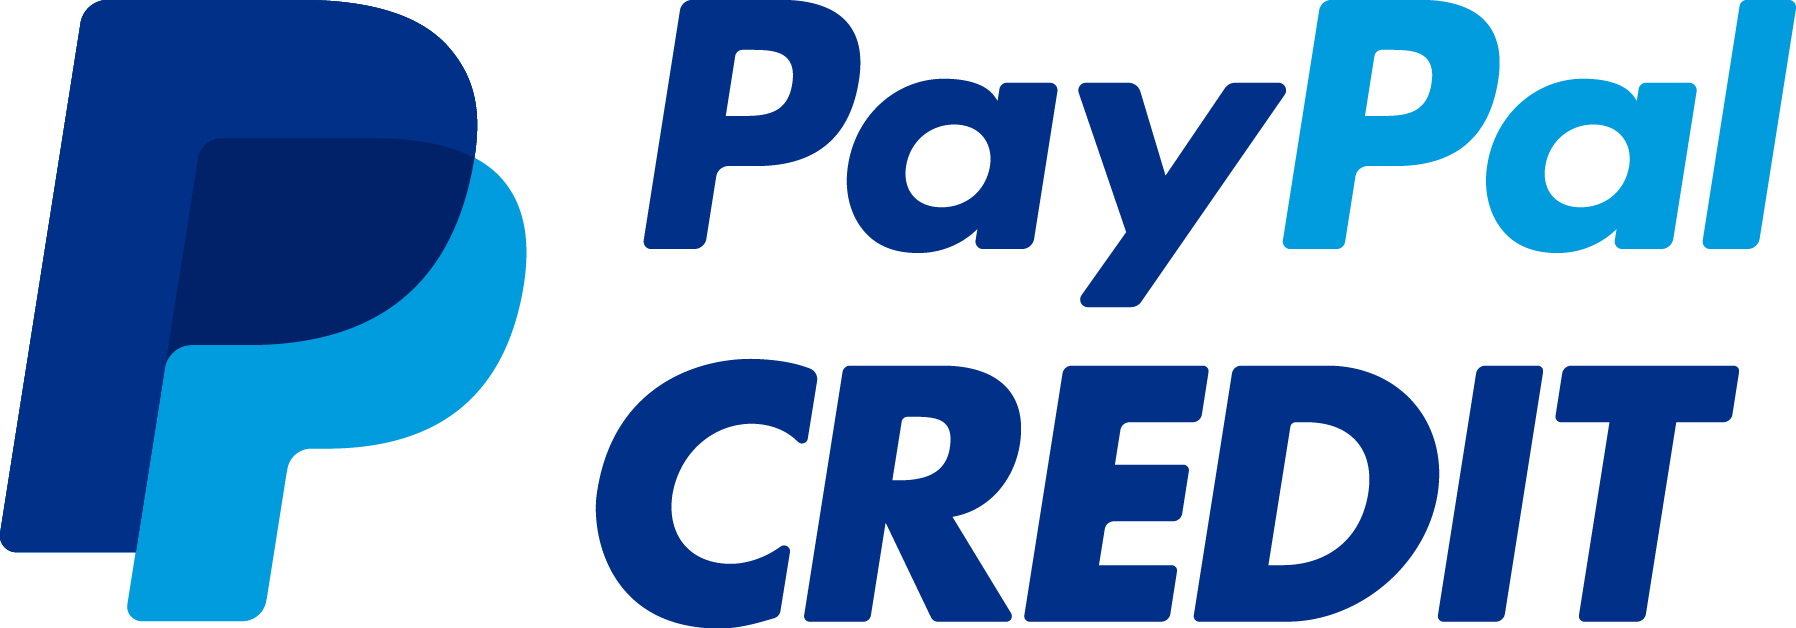 Paypal Credit Mattress First USA